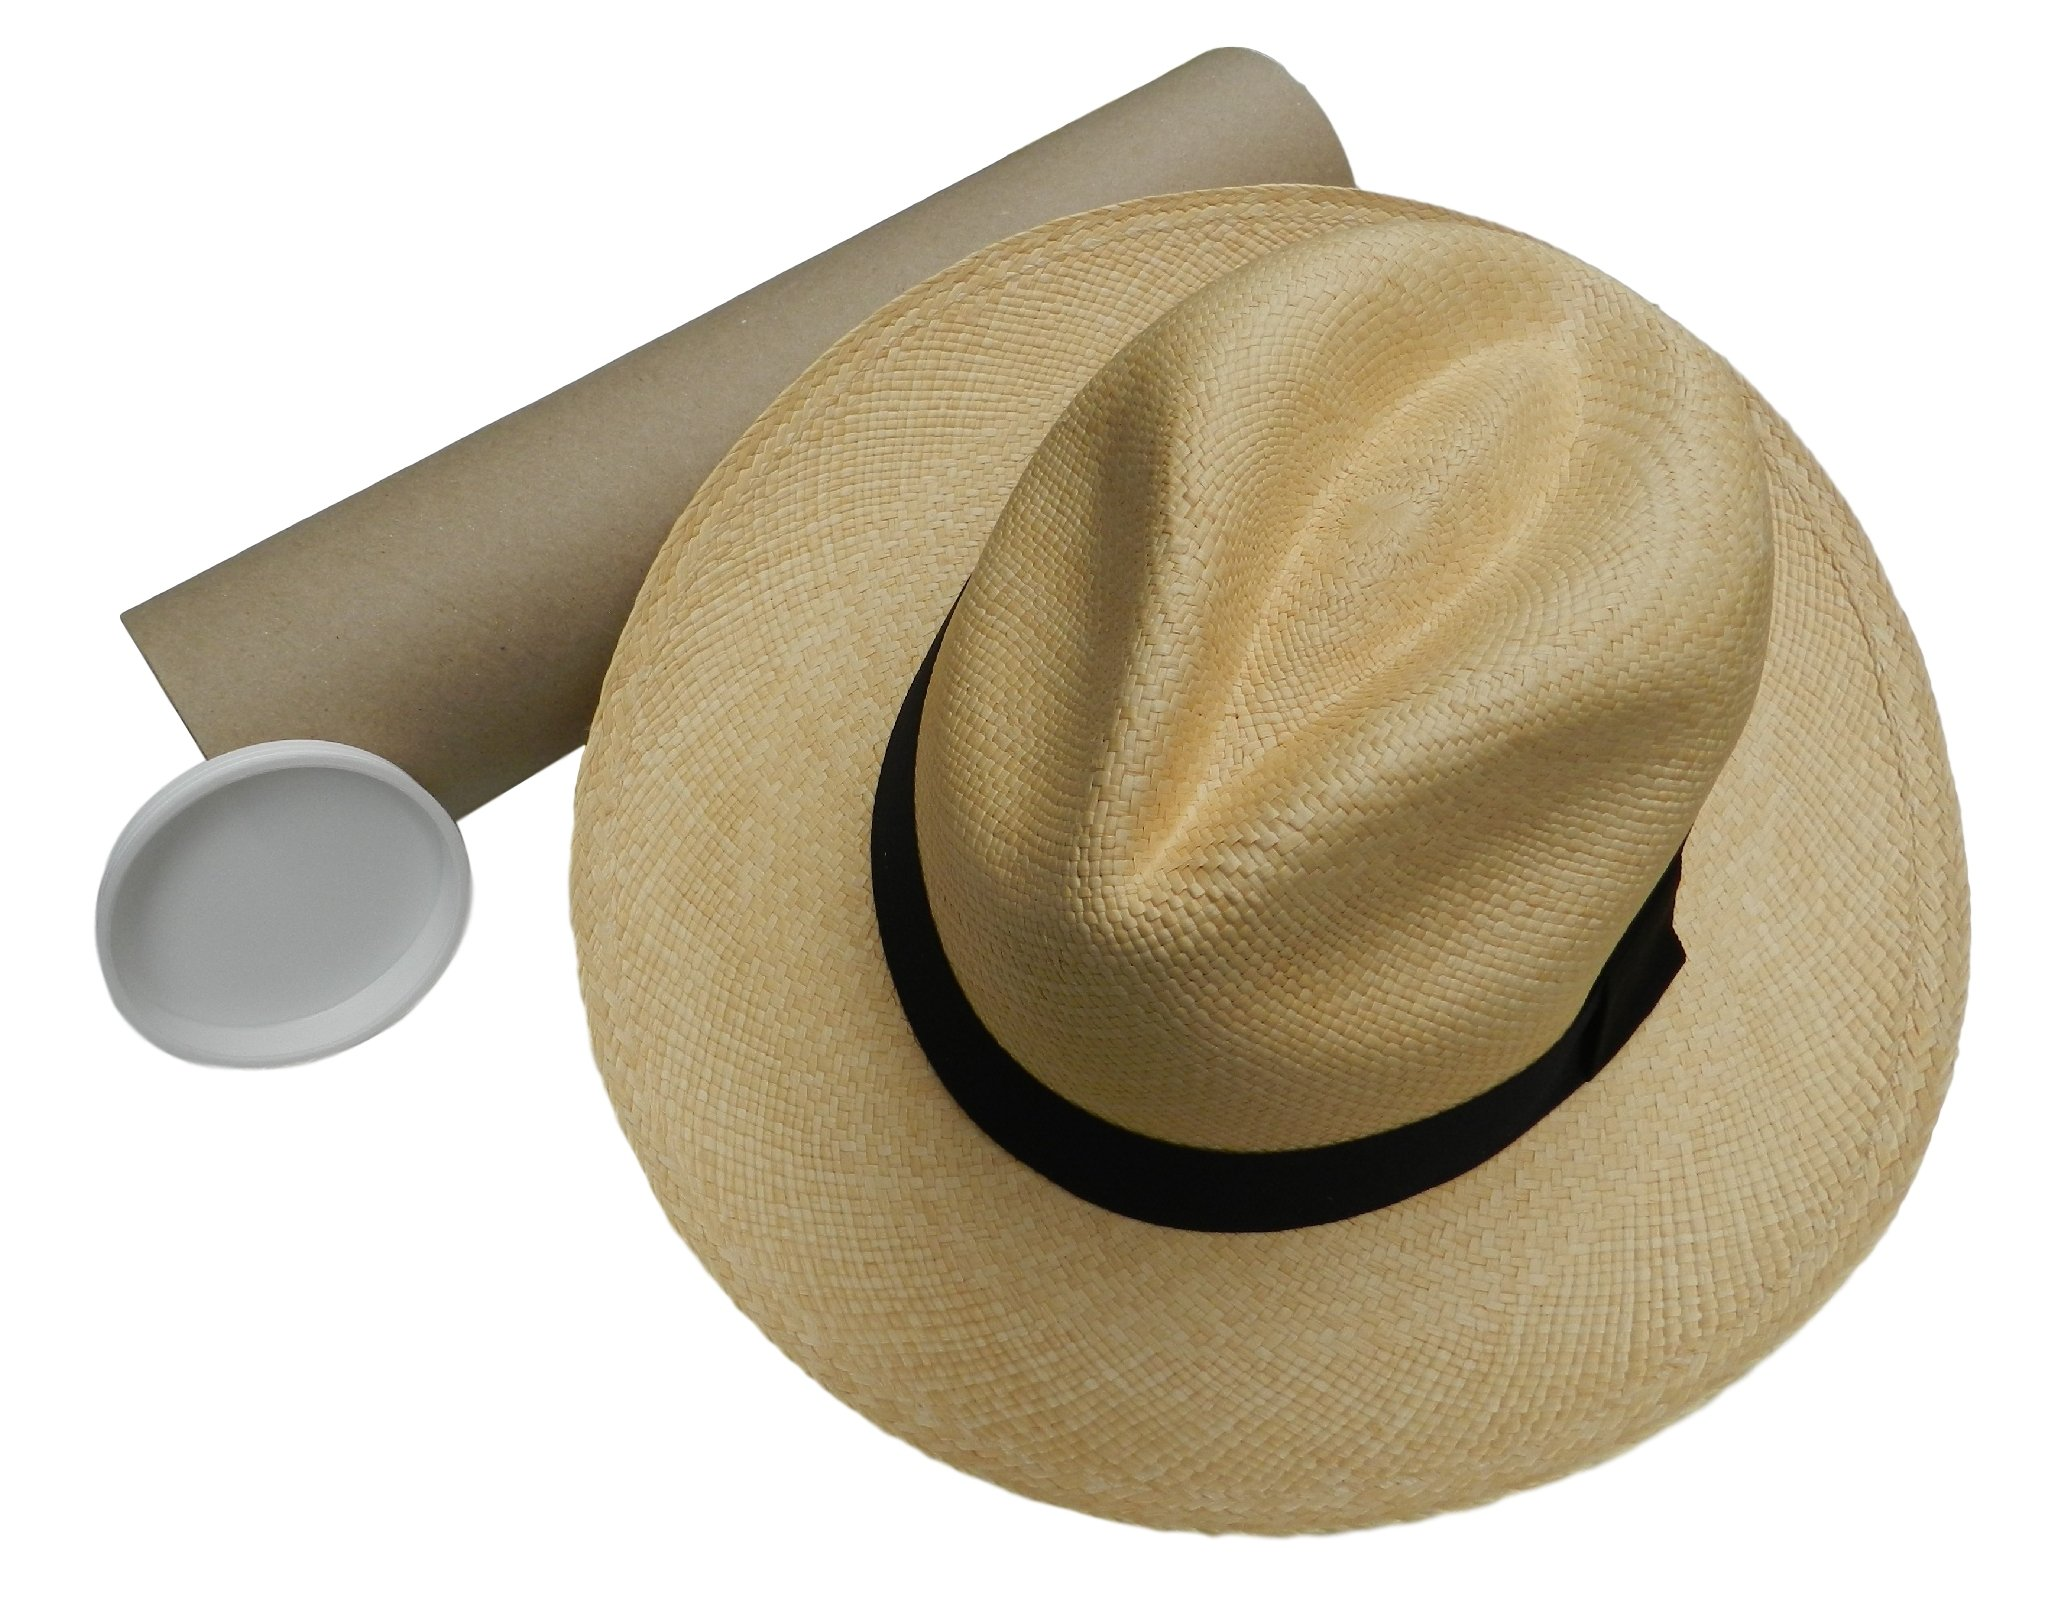 f1222b4b84cd2d Equal Earth New Genuine Panama Hat Rolling Folding Quality with Travel Tube  - Natural